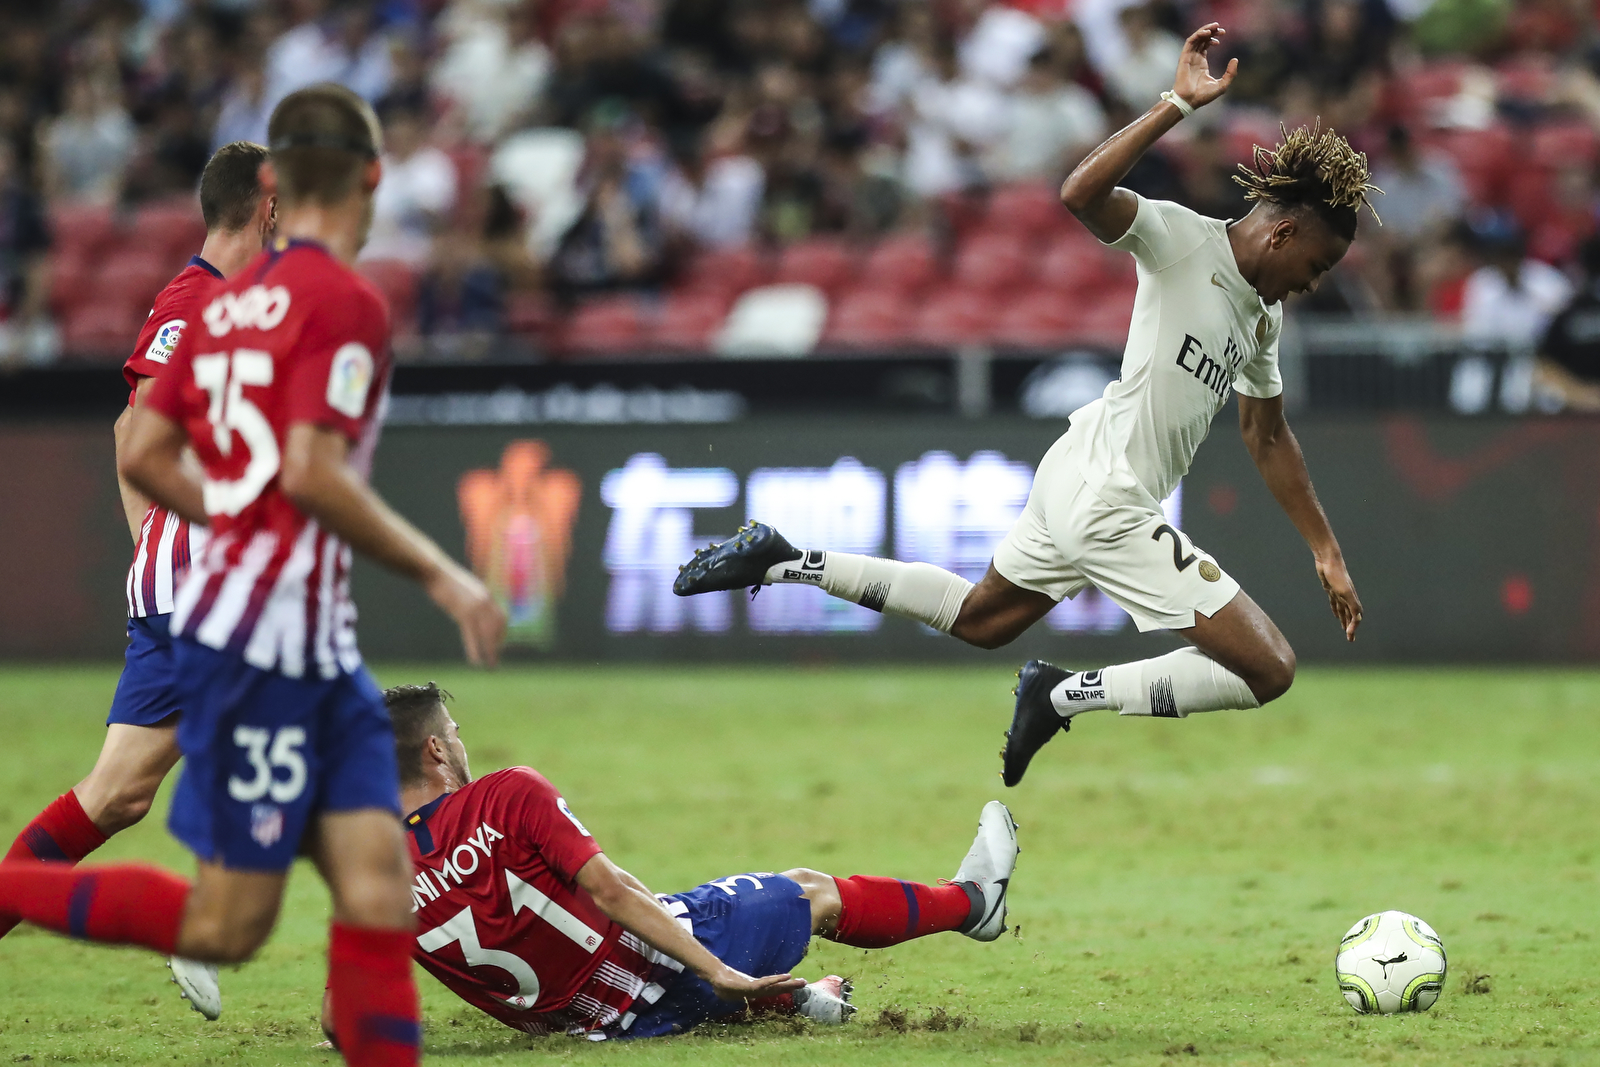 Paris Saint-Germain's Christopher Nkunku jumps to avoid a tackle by Atletico Madrid's Toni Moya during the International Champions Cup match between Paris Saint-Germain and Atletico Madrid in Singapore, Monday, July 30, 2018. (AP Photo/Yong Teck Lim)